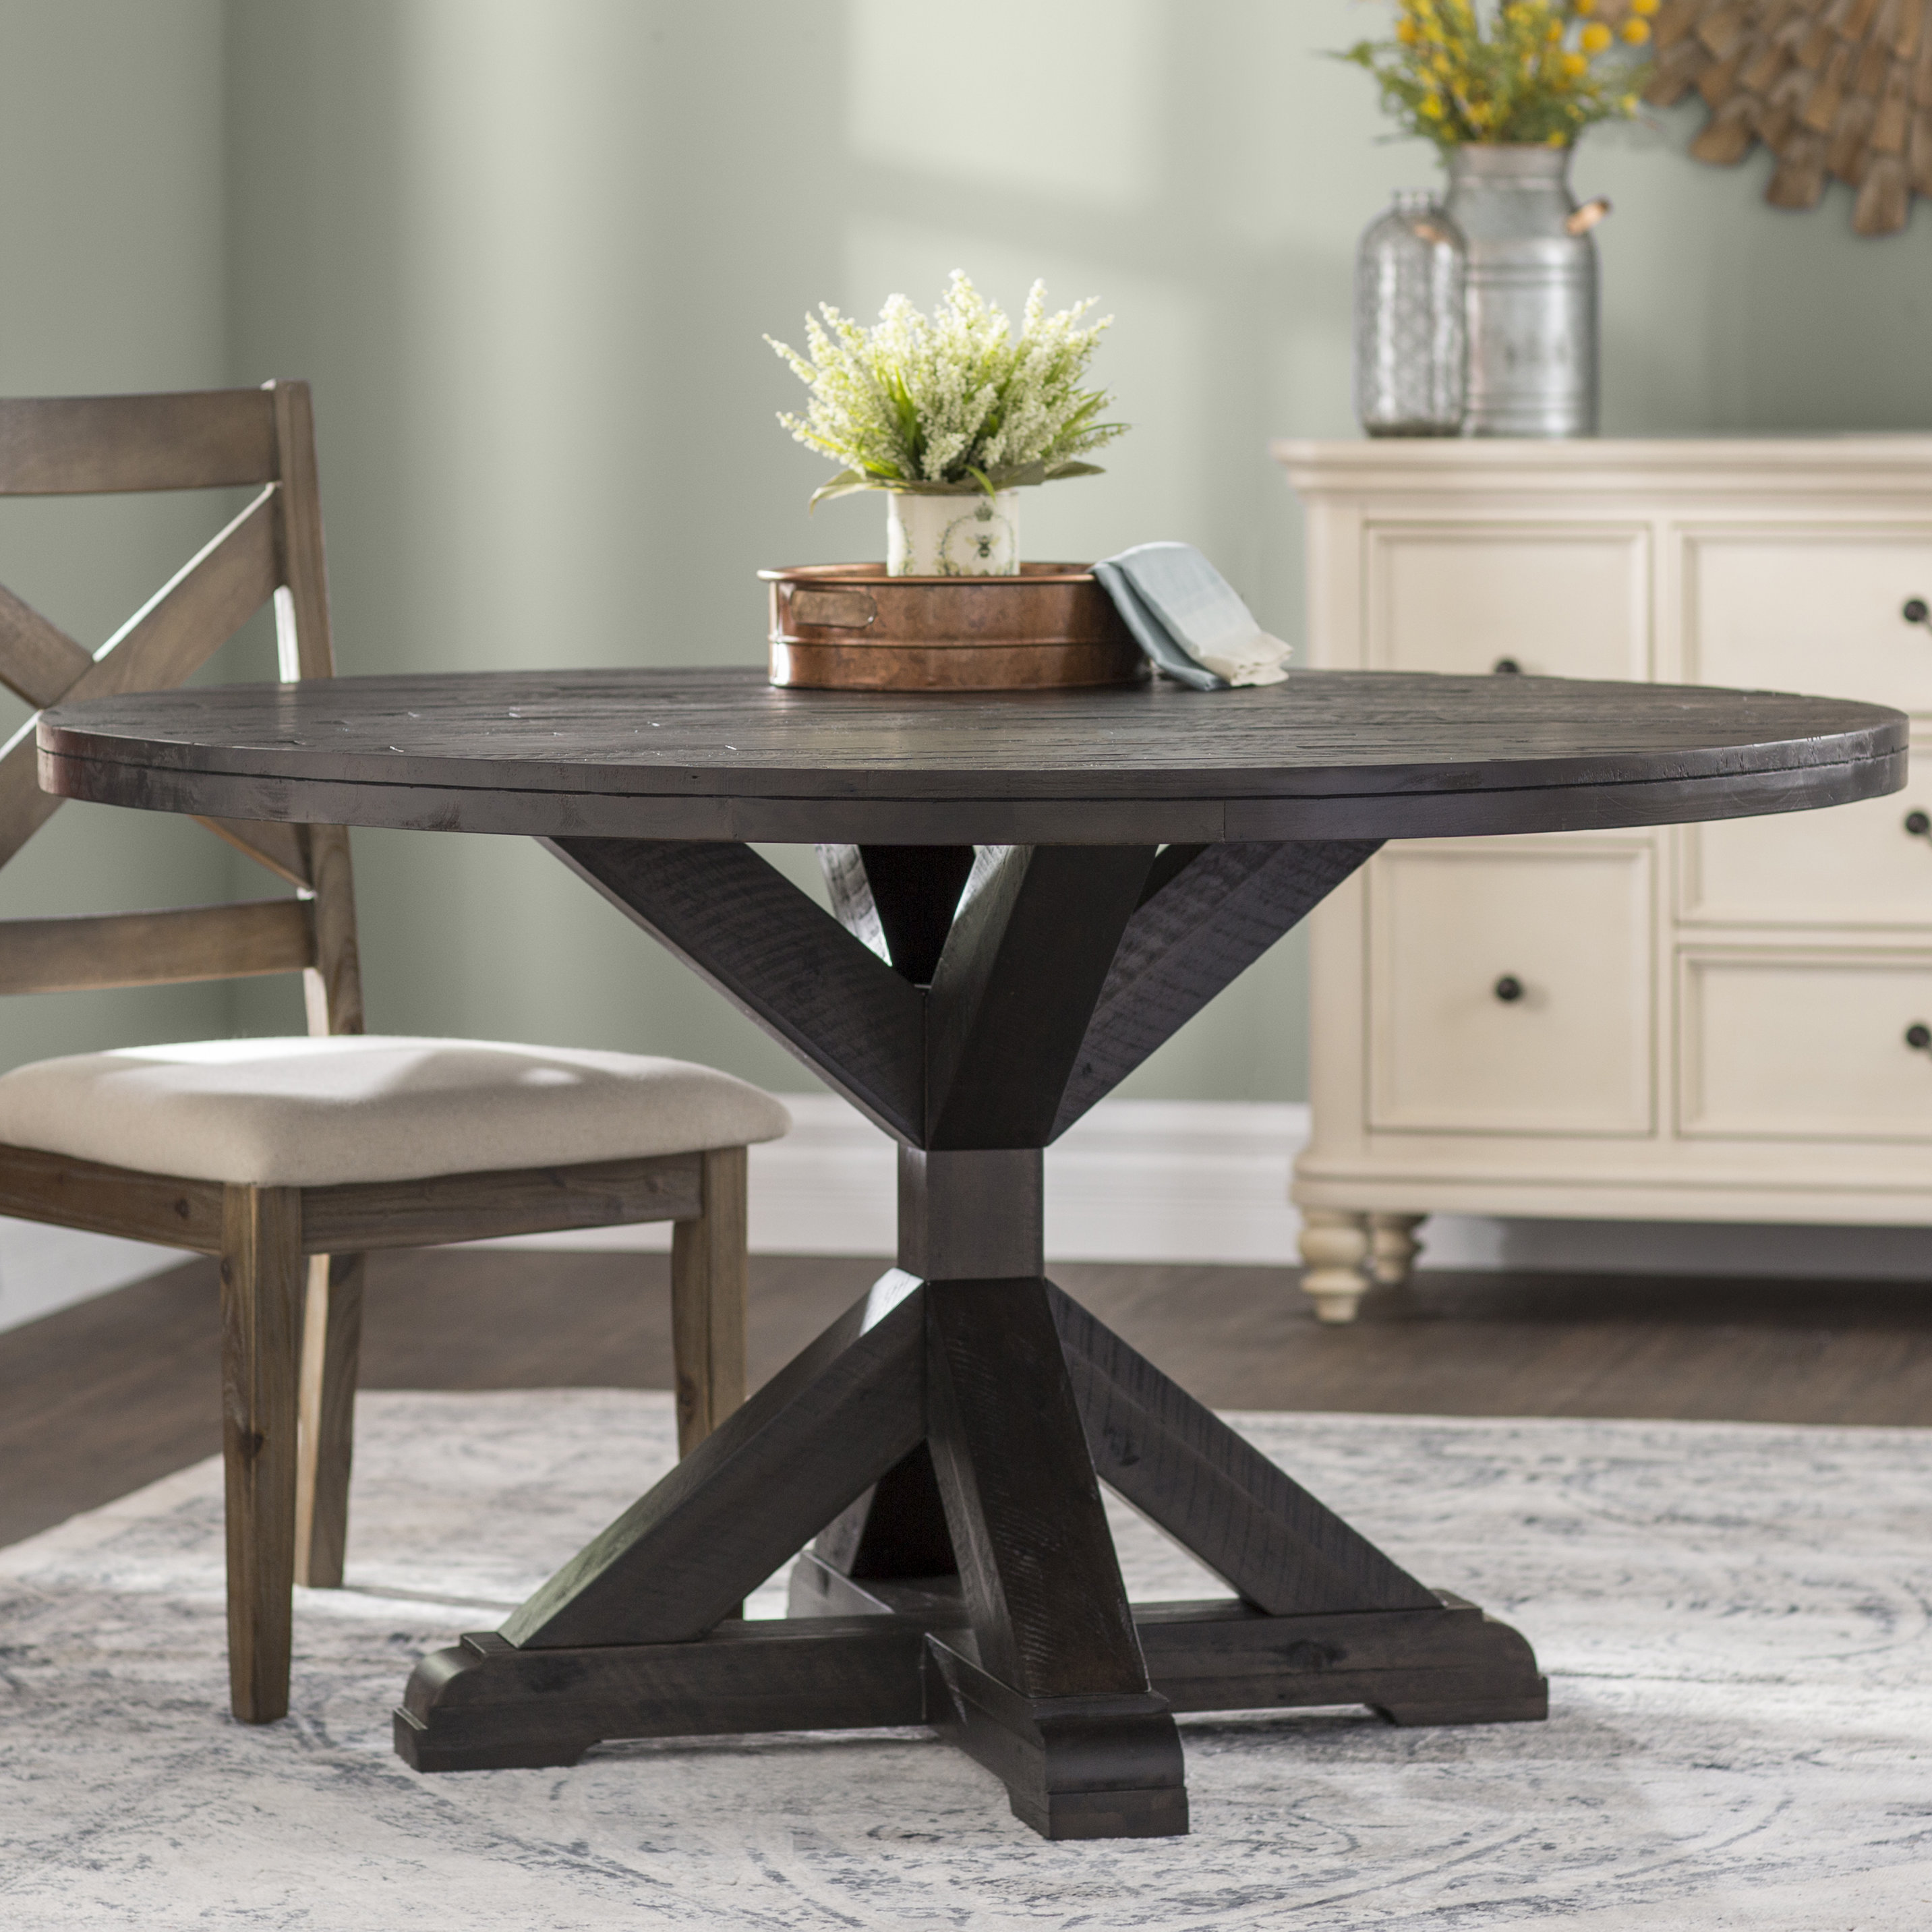 laurel foundry modern farmhouse colborne dining table reviews round accent skirts side coffee glass set farm style end tables cool room chairs iron base wool rugs rustic cocktail